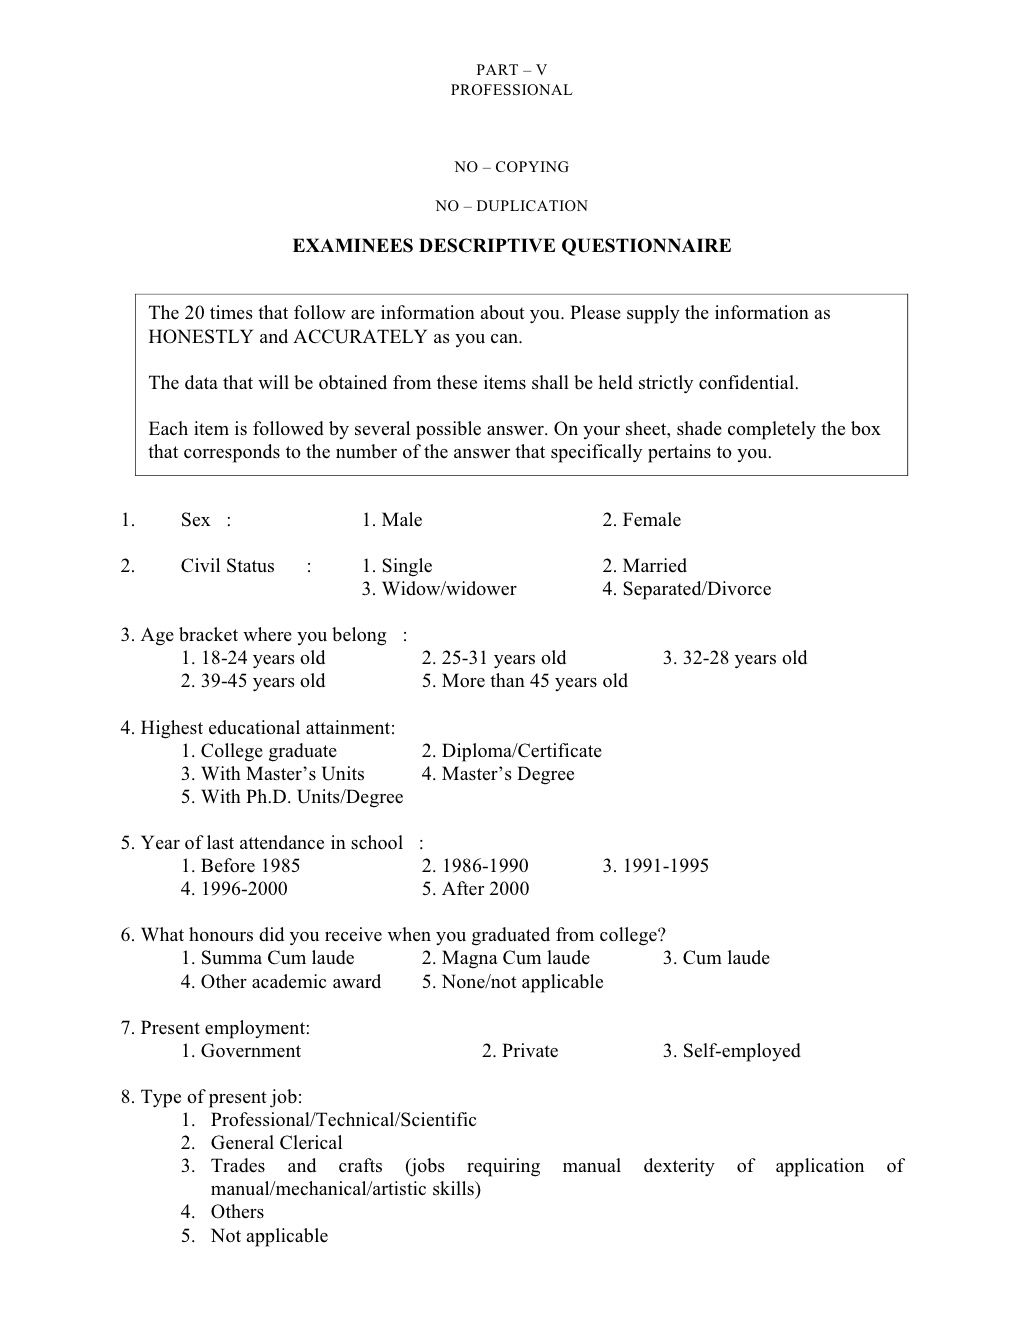 Philippines Civilserviceprofessionalreviewer By Marco Med